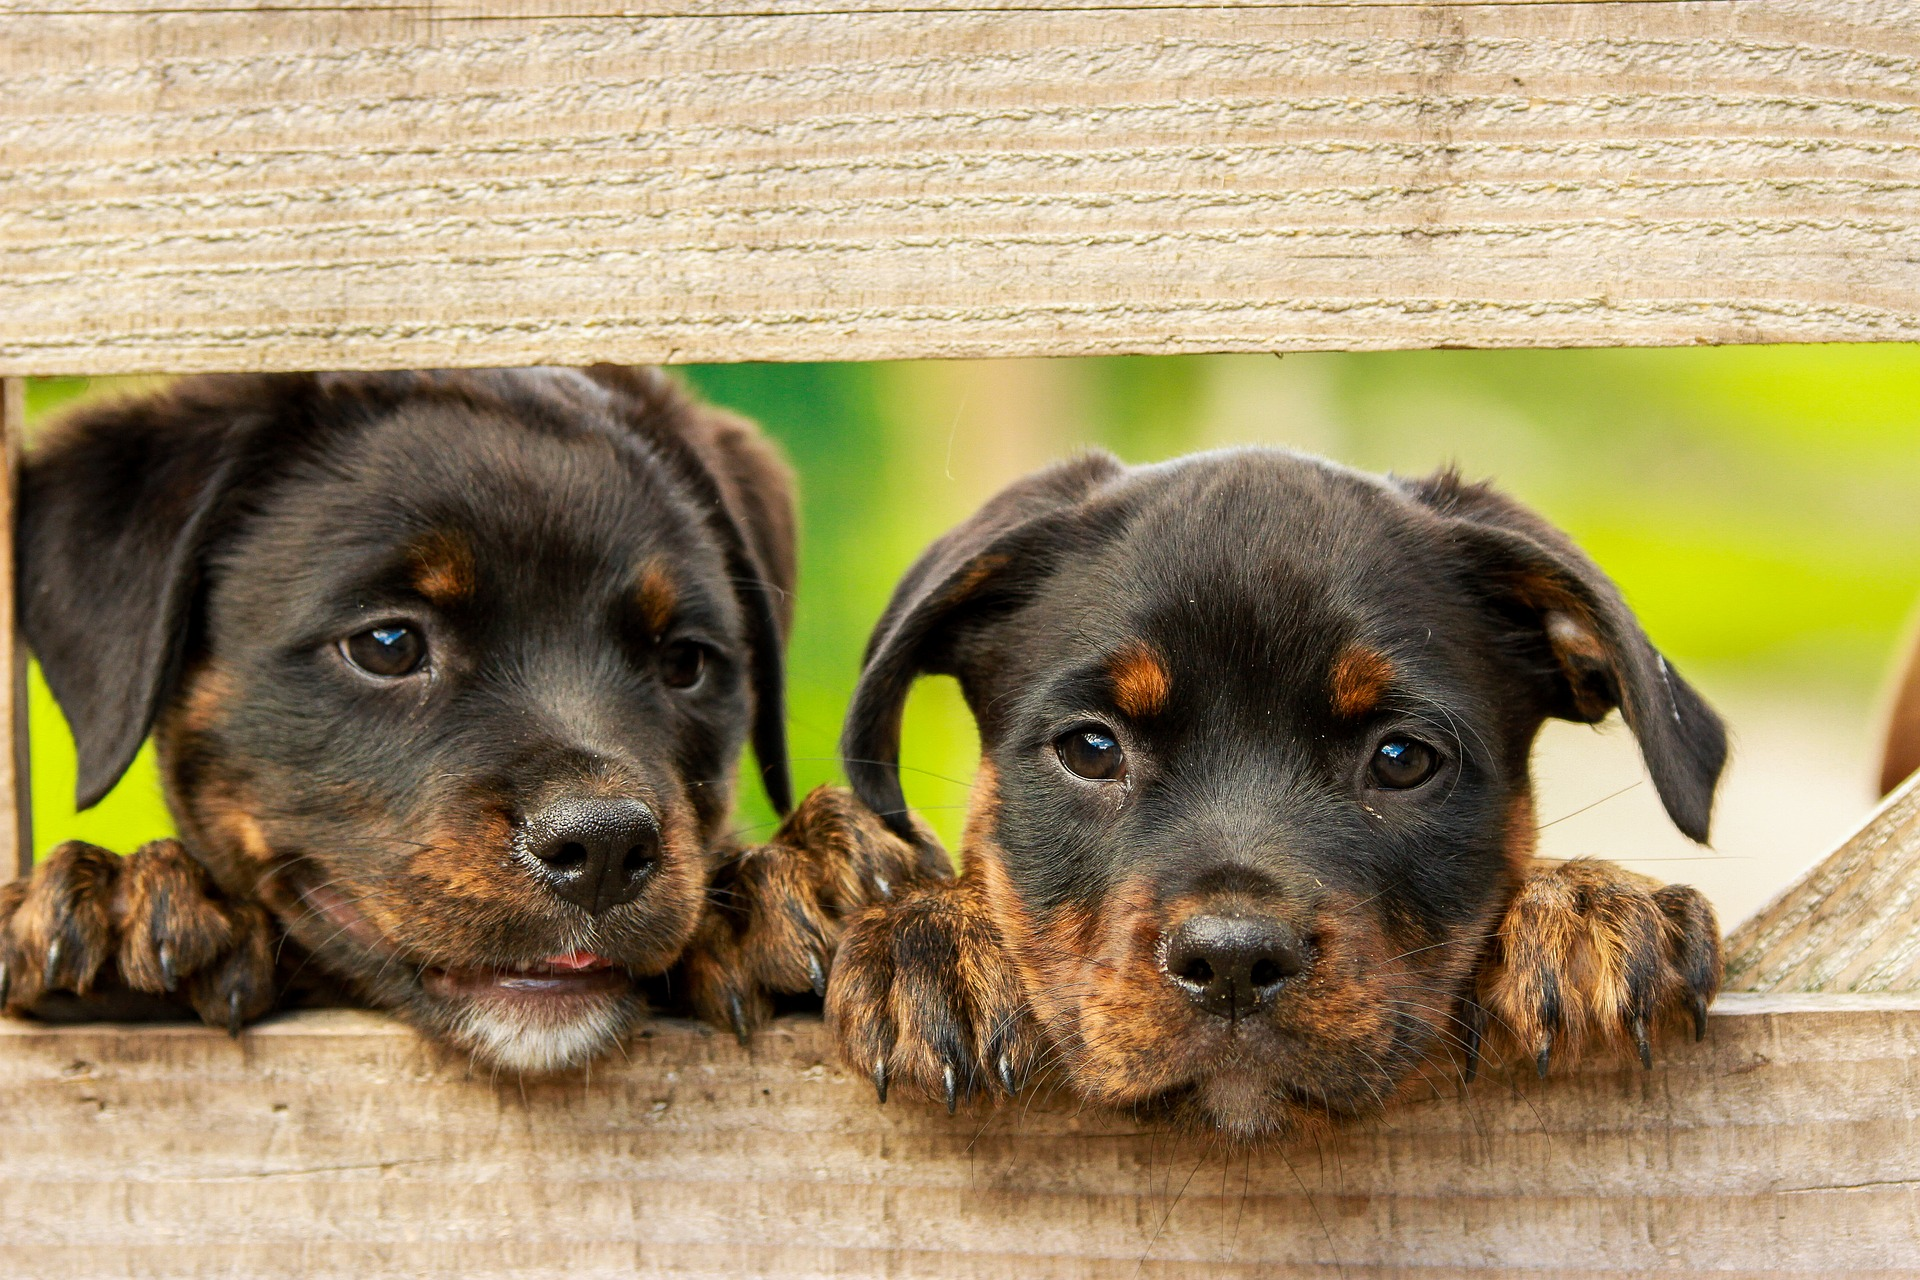 Photo of two rottweiler puppies